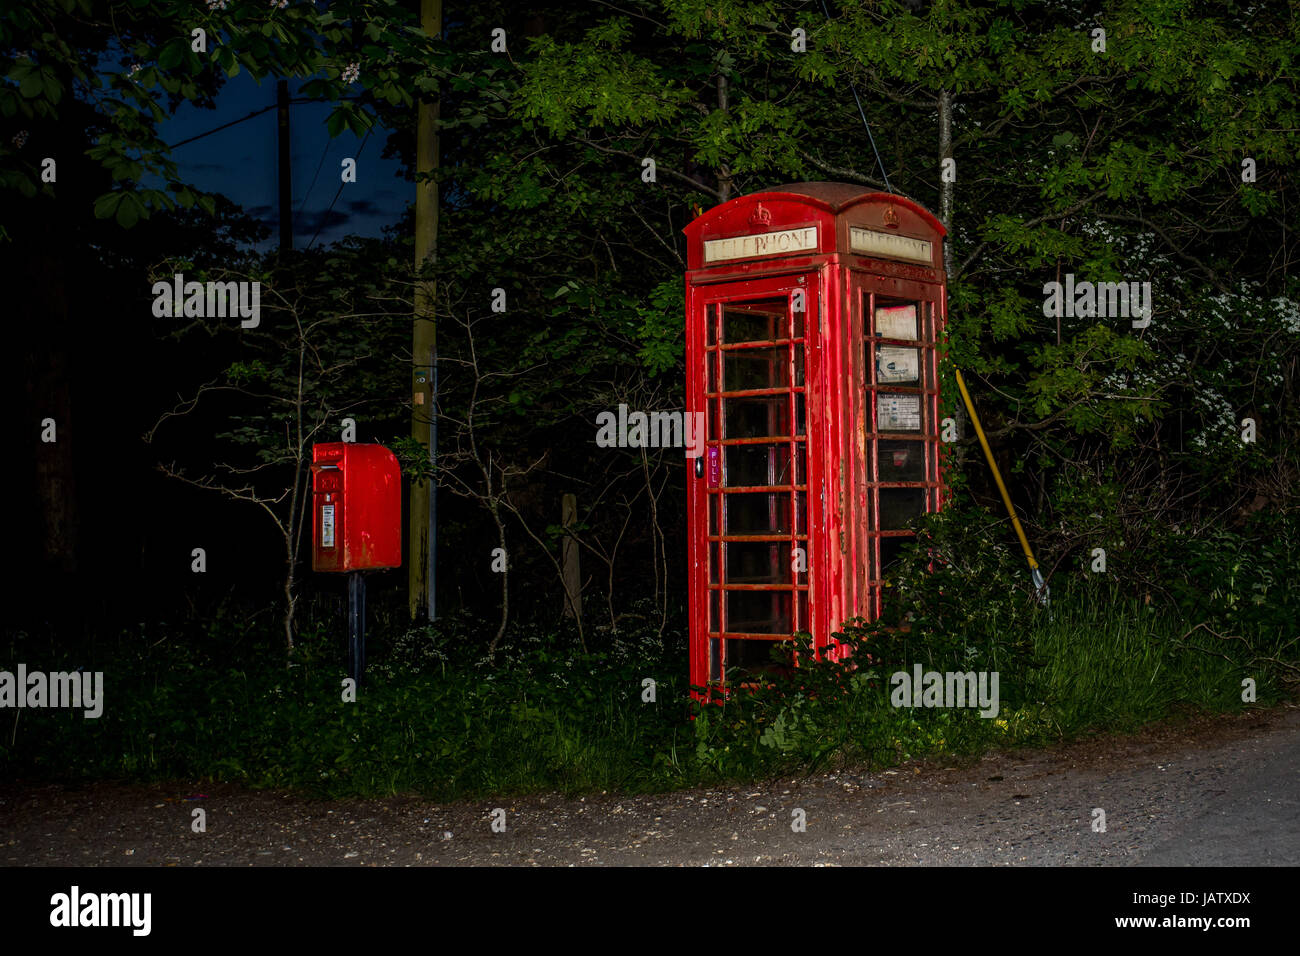 red telephone box in forest in england at night - Stock Image